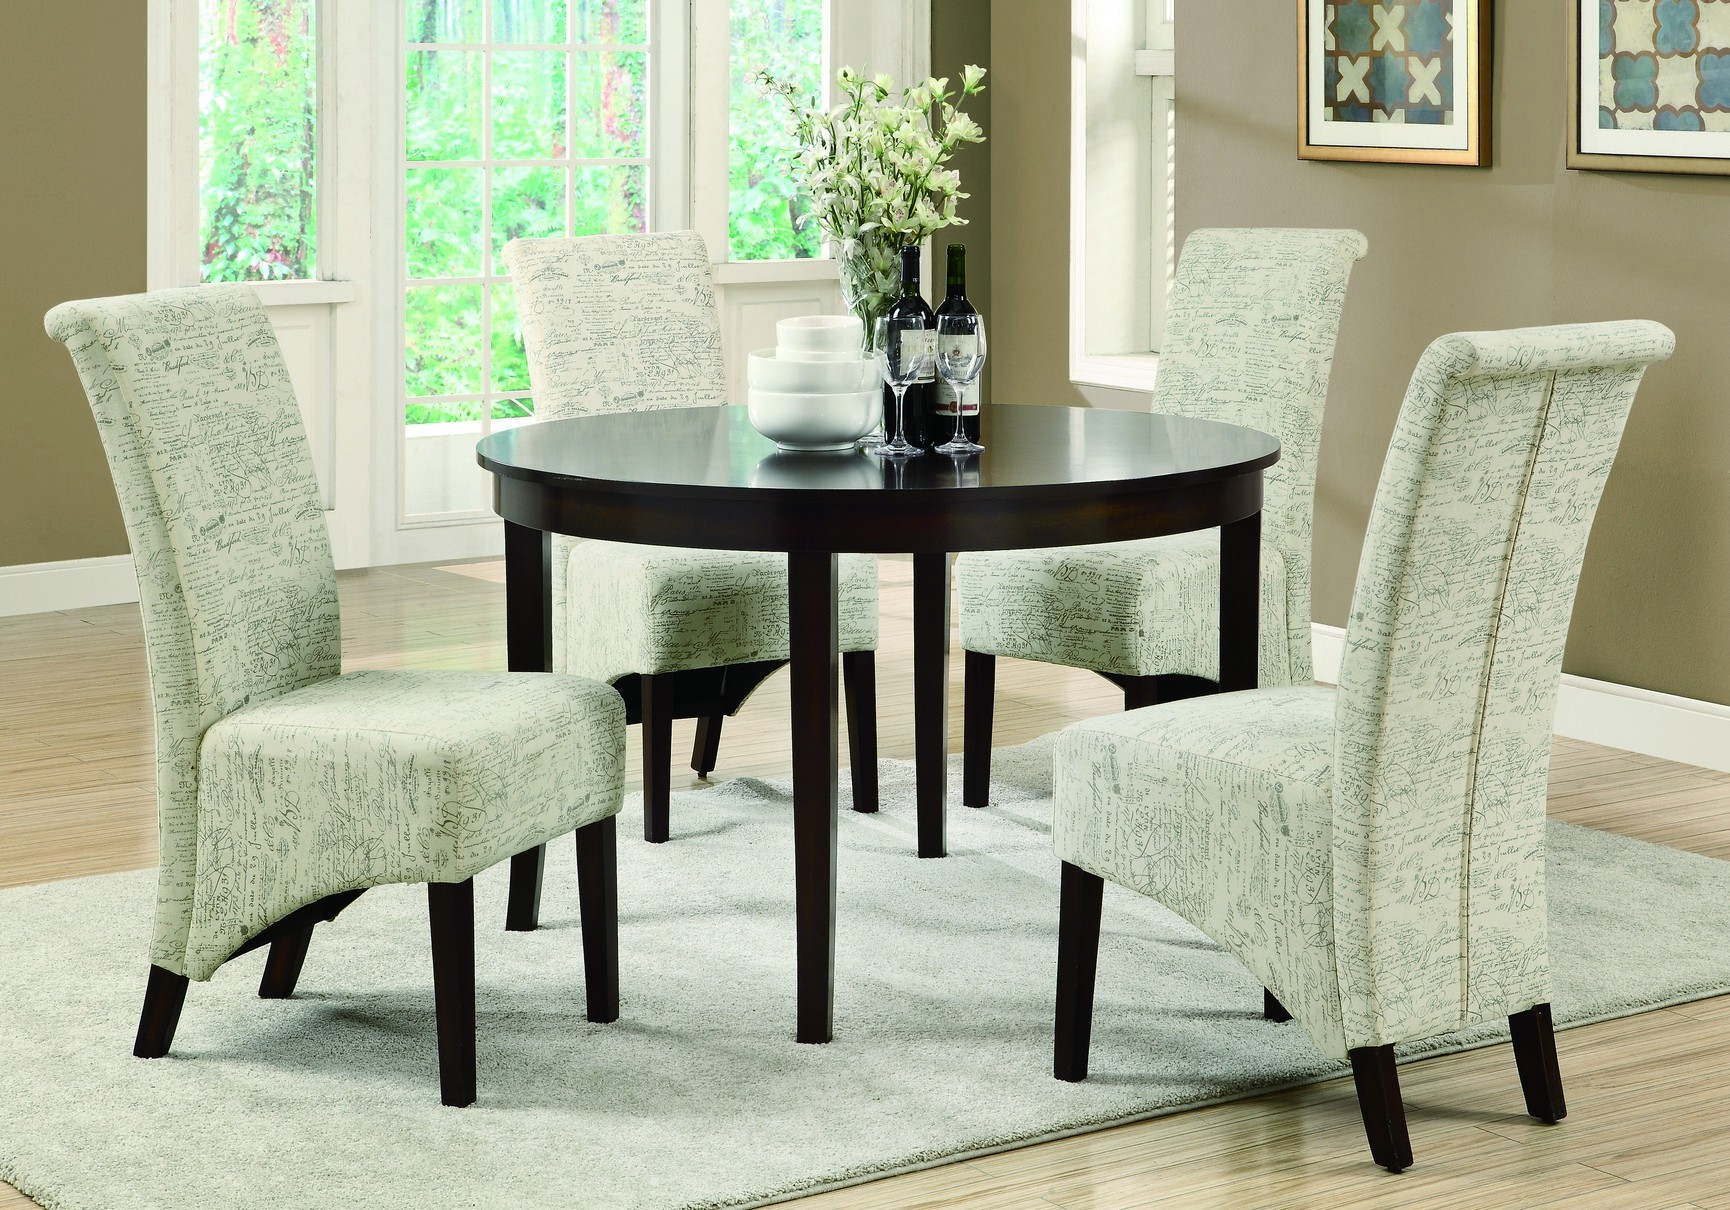 flooring rugs inspiring and lucite armchair also side cosy dining room design with set window treatment wood impressive complement any your home fascinating area indoor ceramic